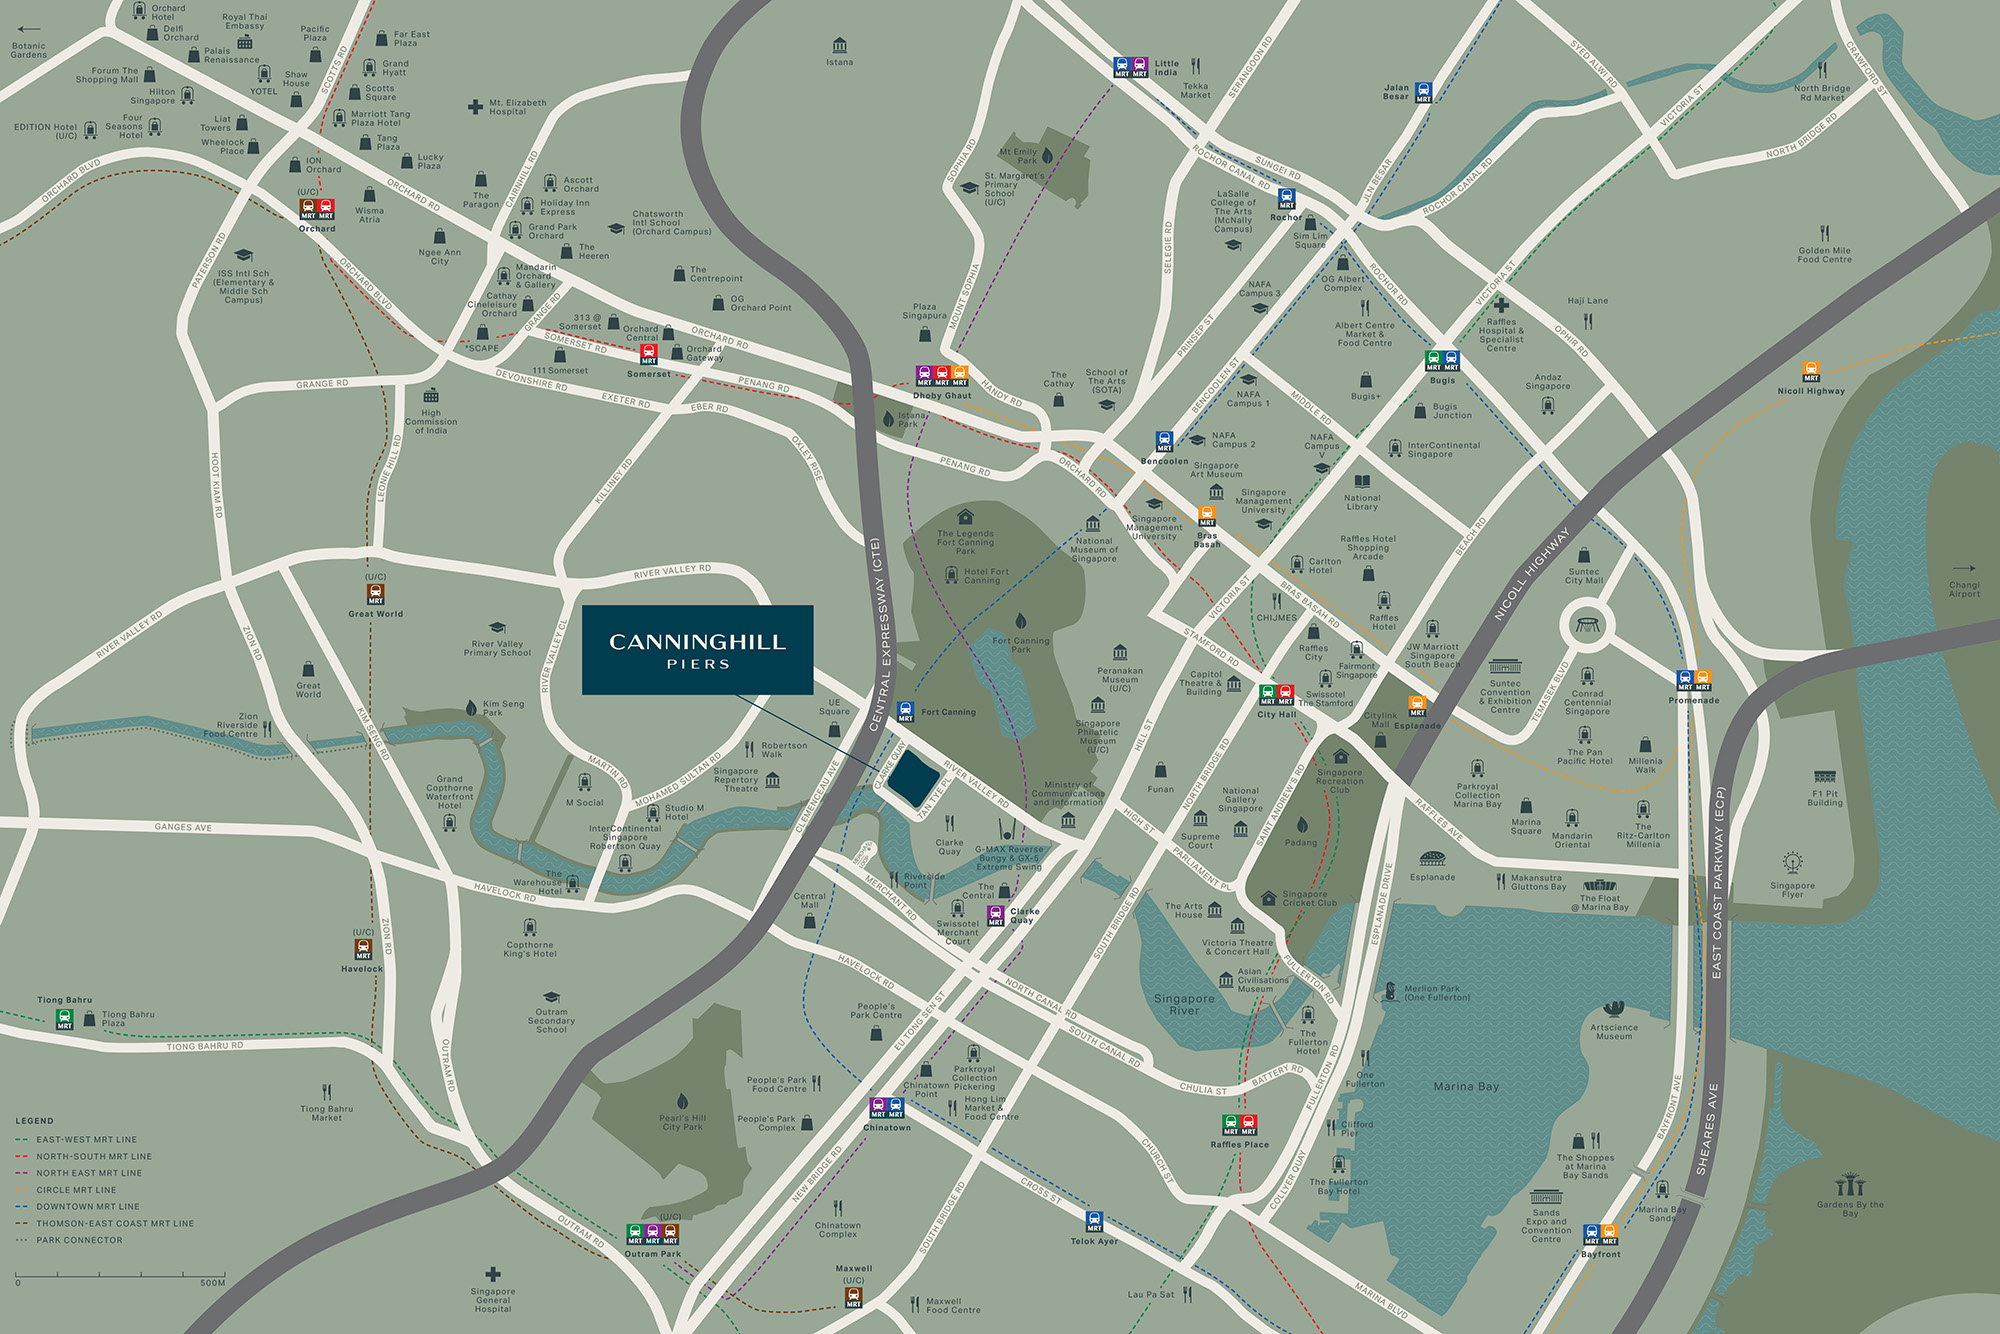 Canninghill Piers Location Map Singapore